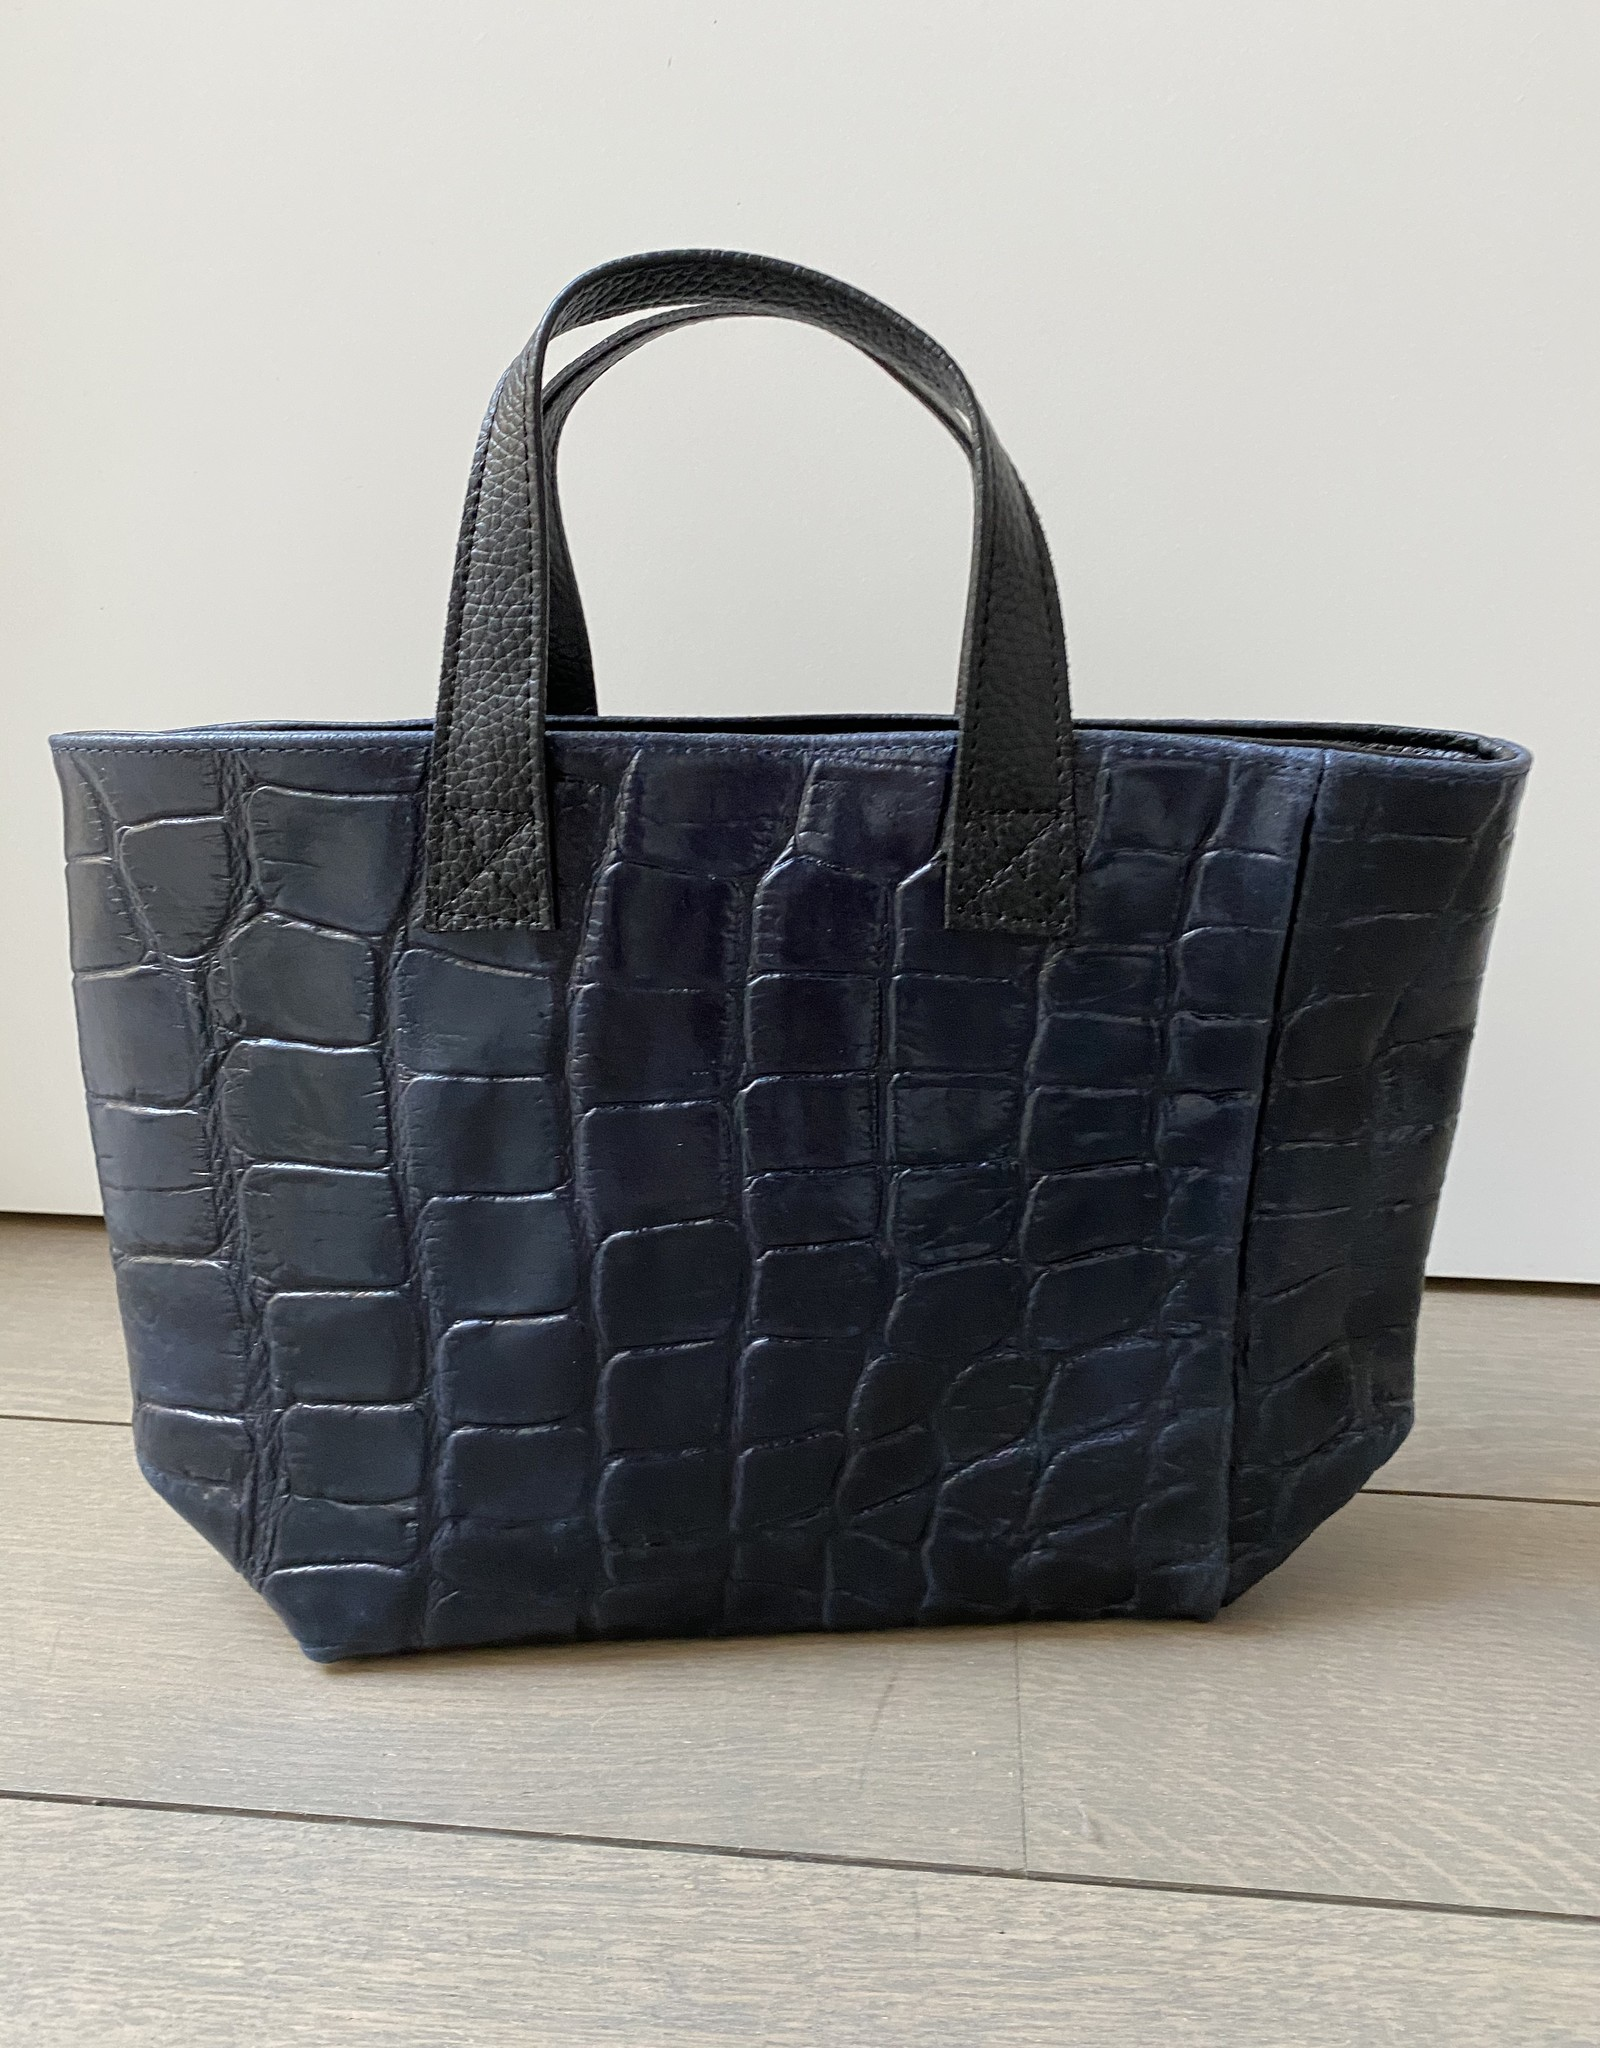 Crocco leather little bag in dark blue